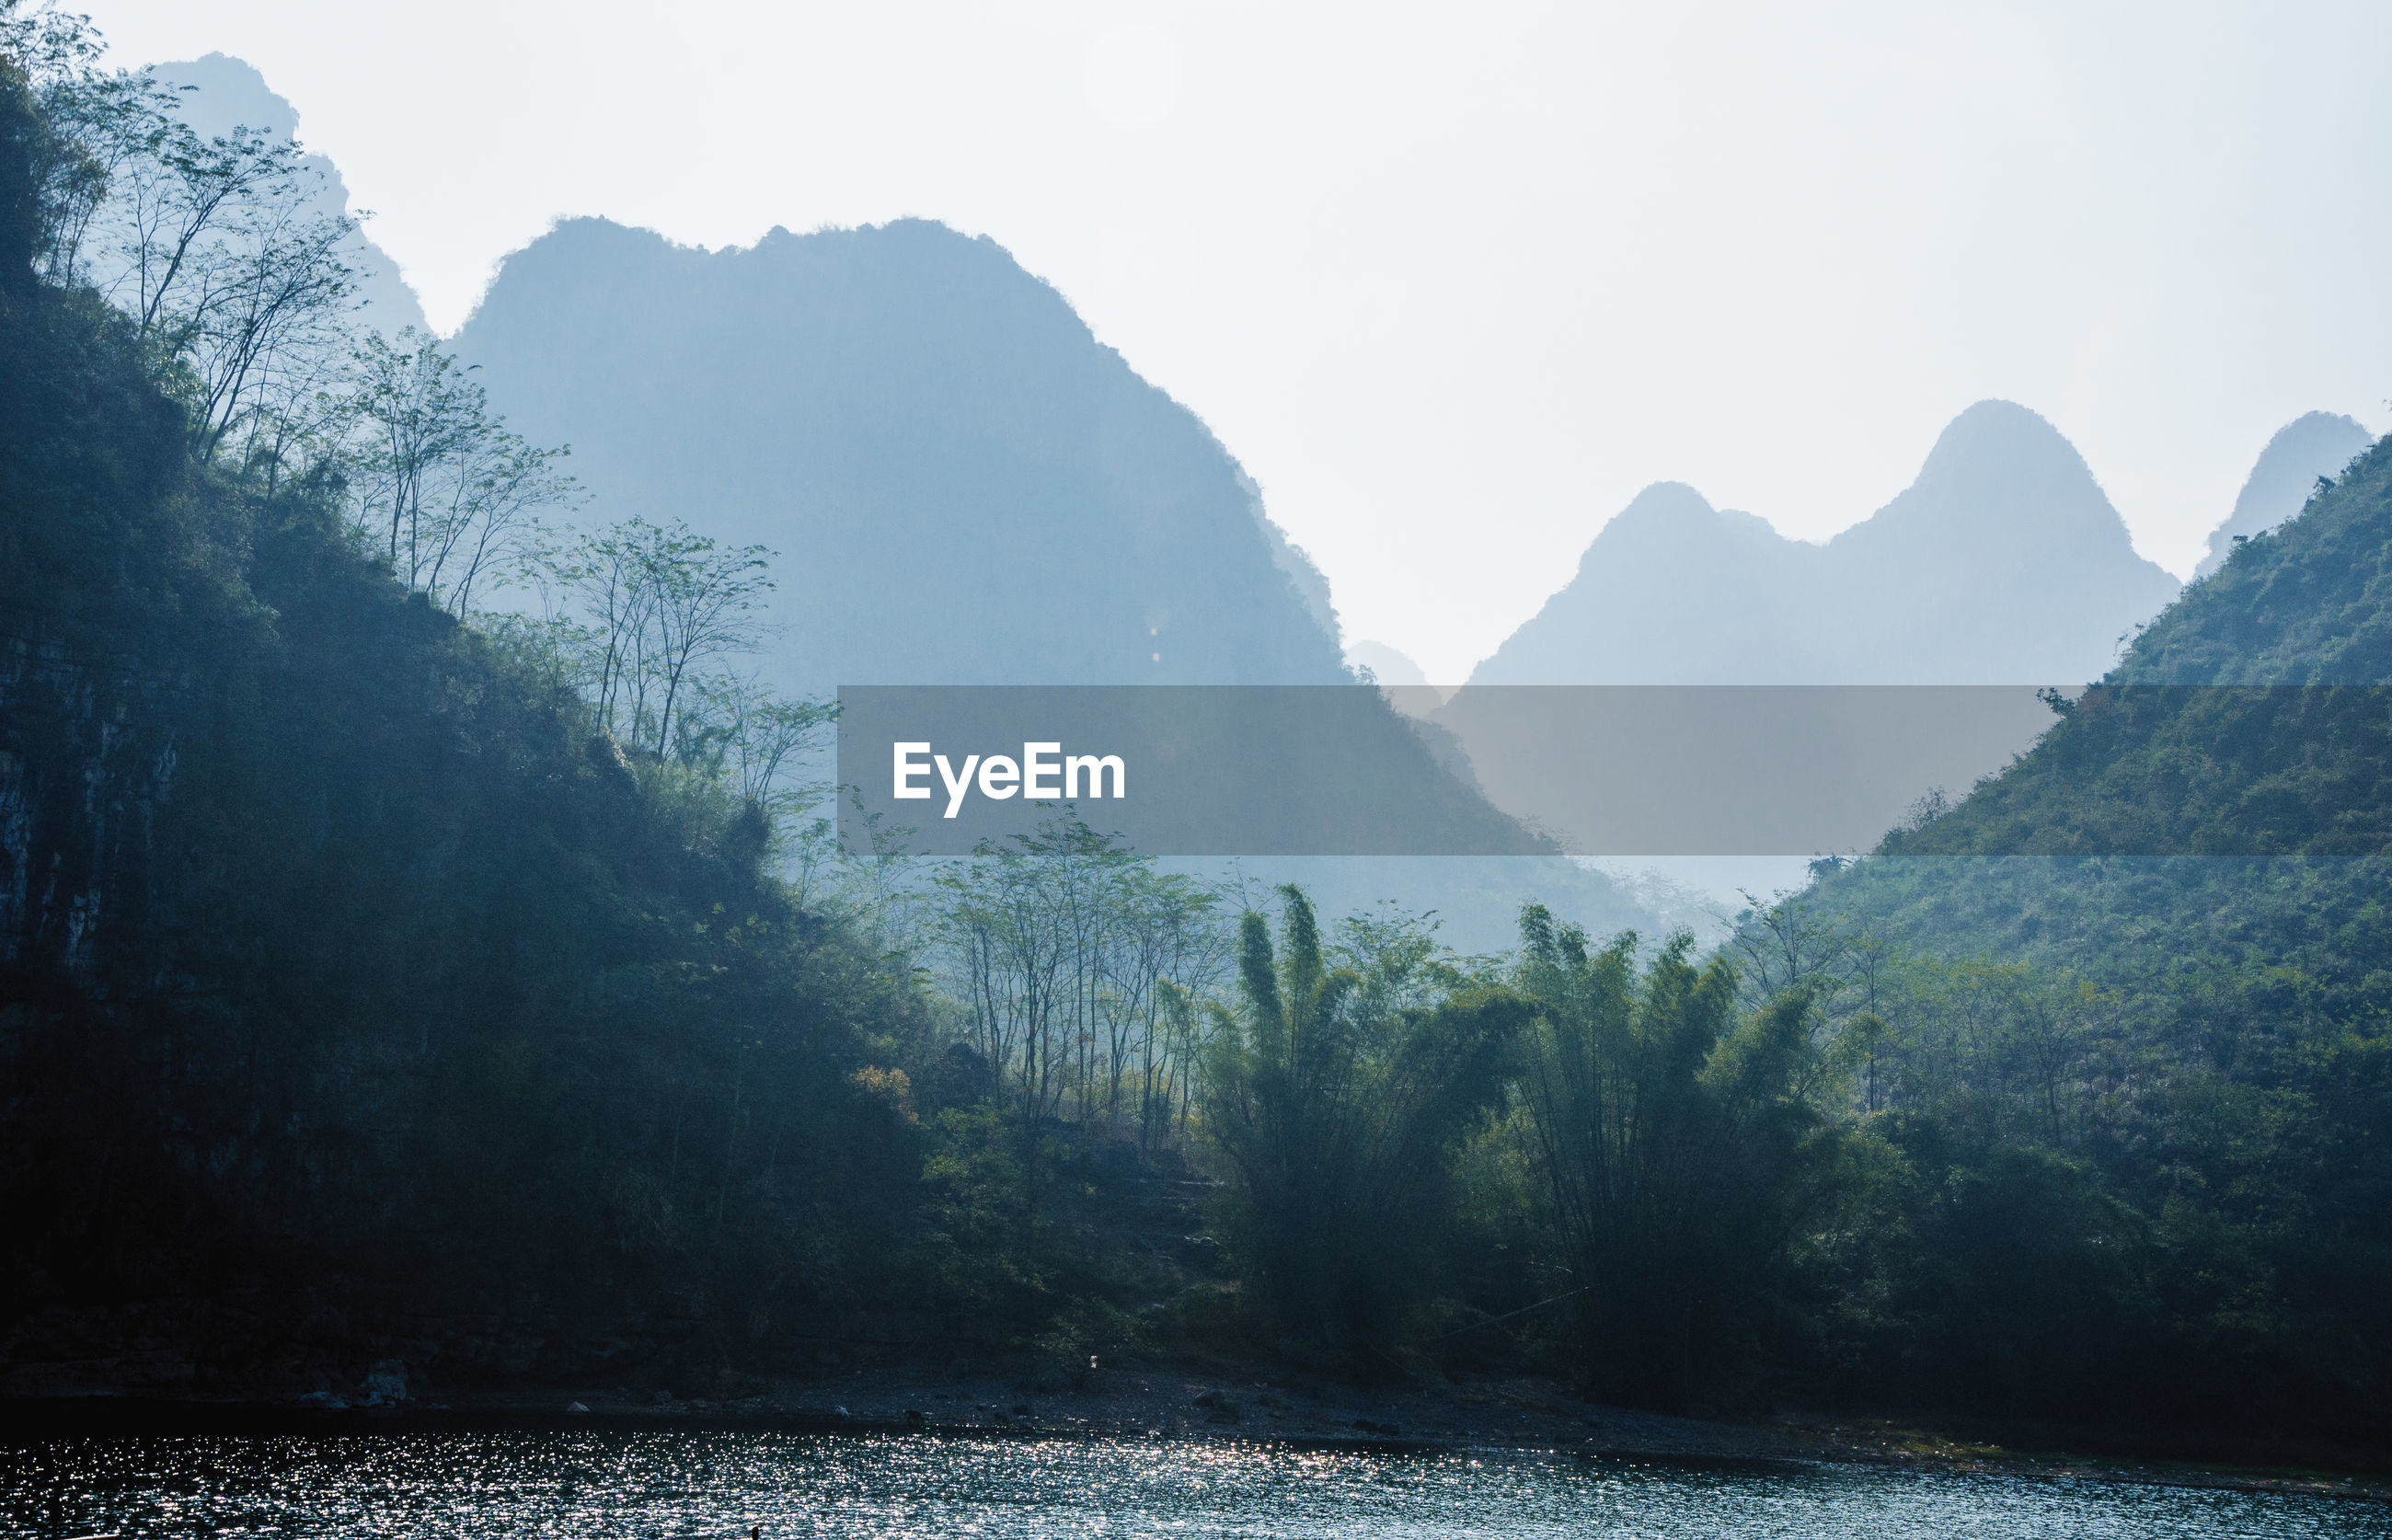 SCENIC VIEW OF LAKE IN MOUNTAINS